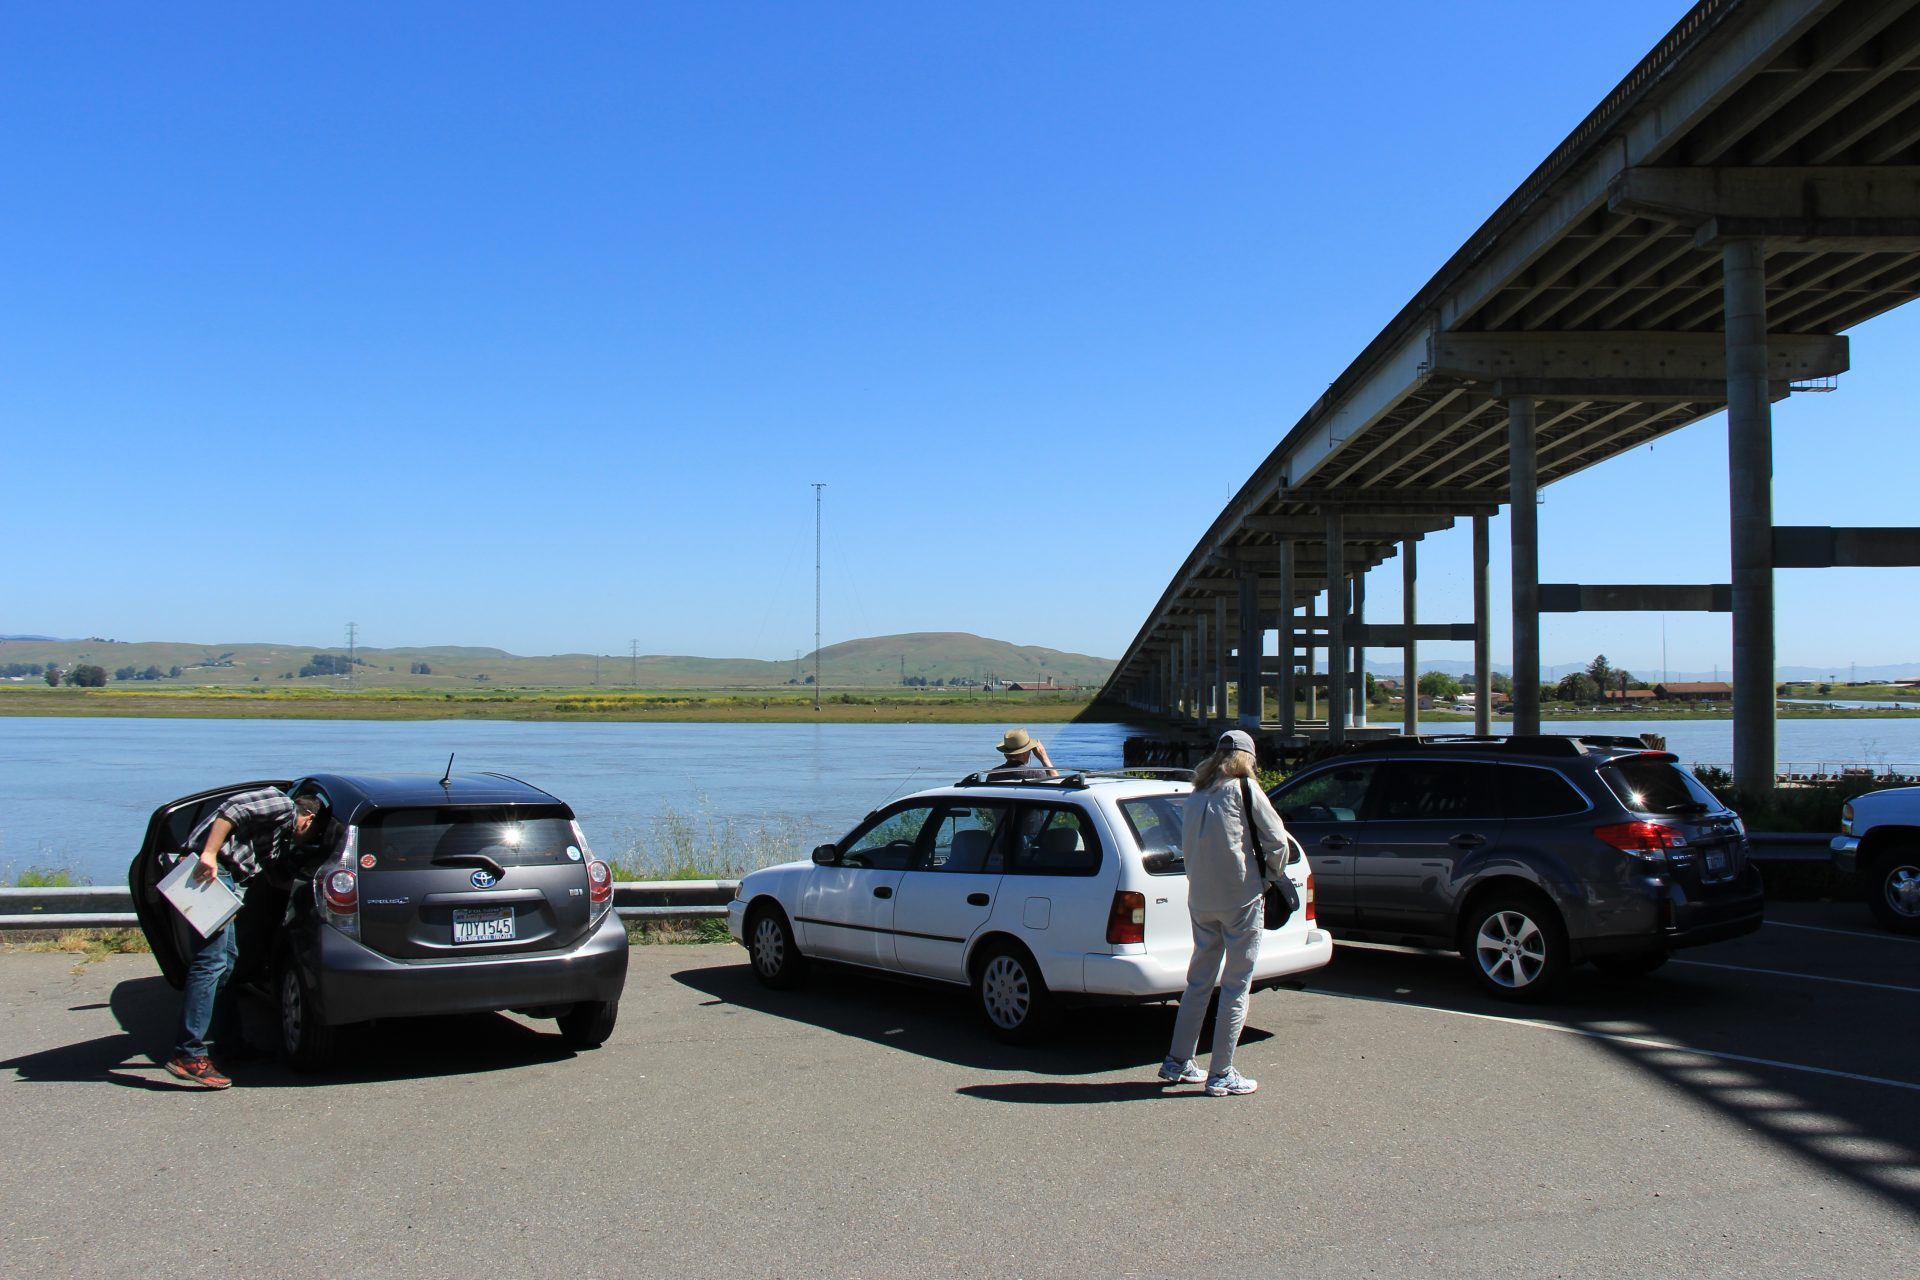 People getting out of cars n parking lot, with viaduct bridge passing overhead